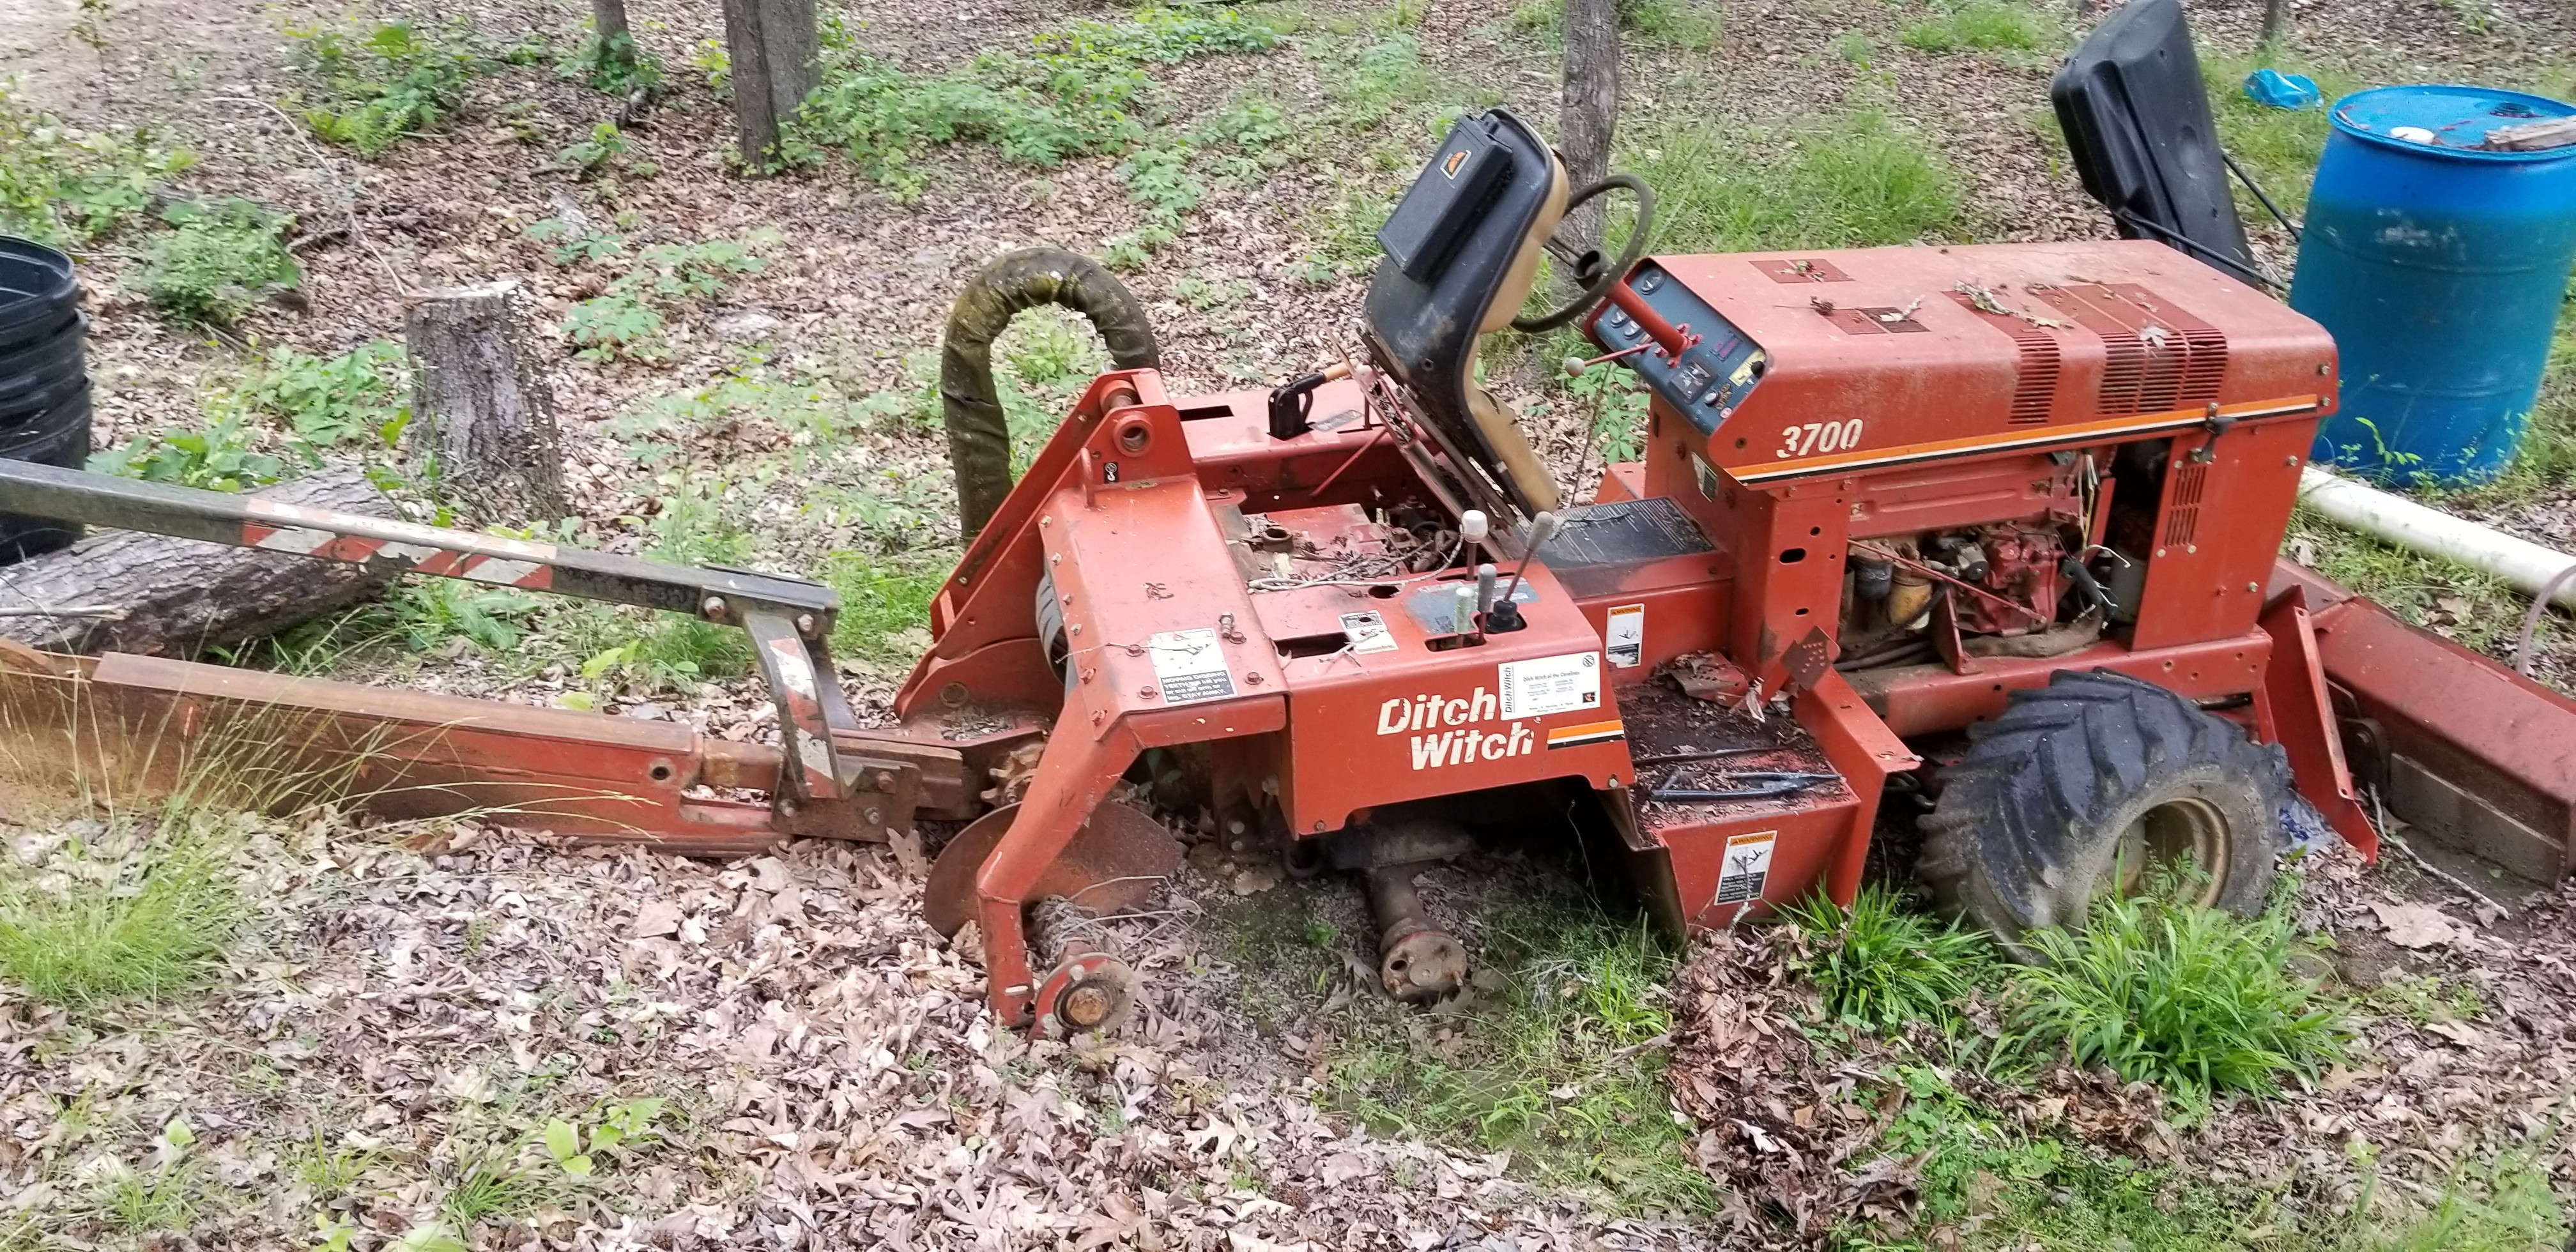 Ditch Witch, Used, Junk, Salvage, Parts, Tires, Trencher, Ride-on, 3700DD, tractor